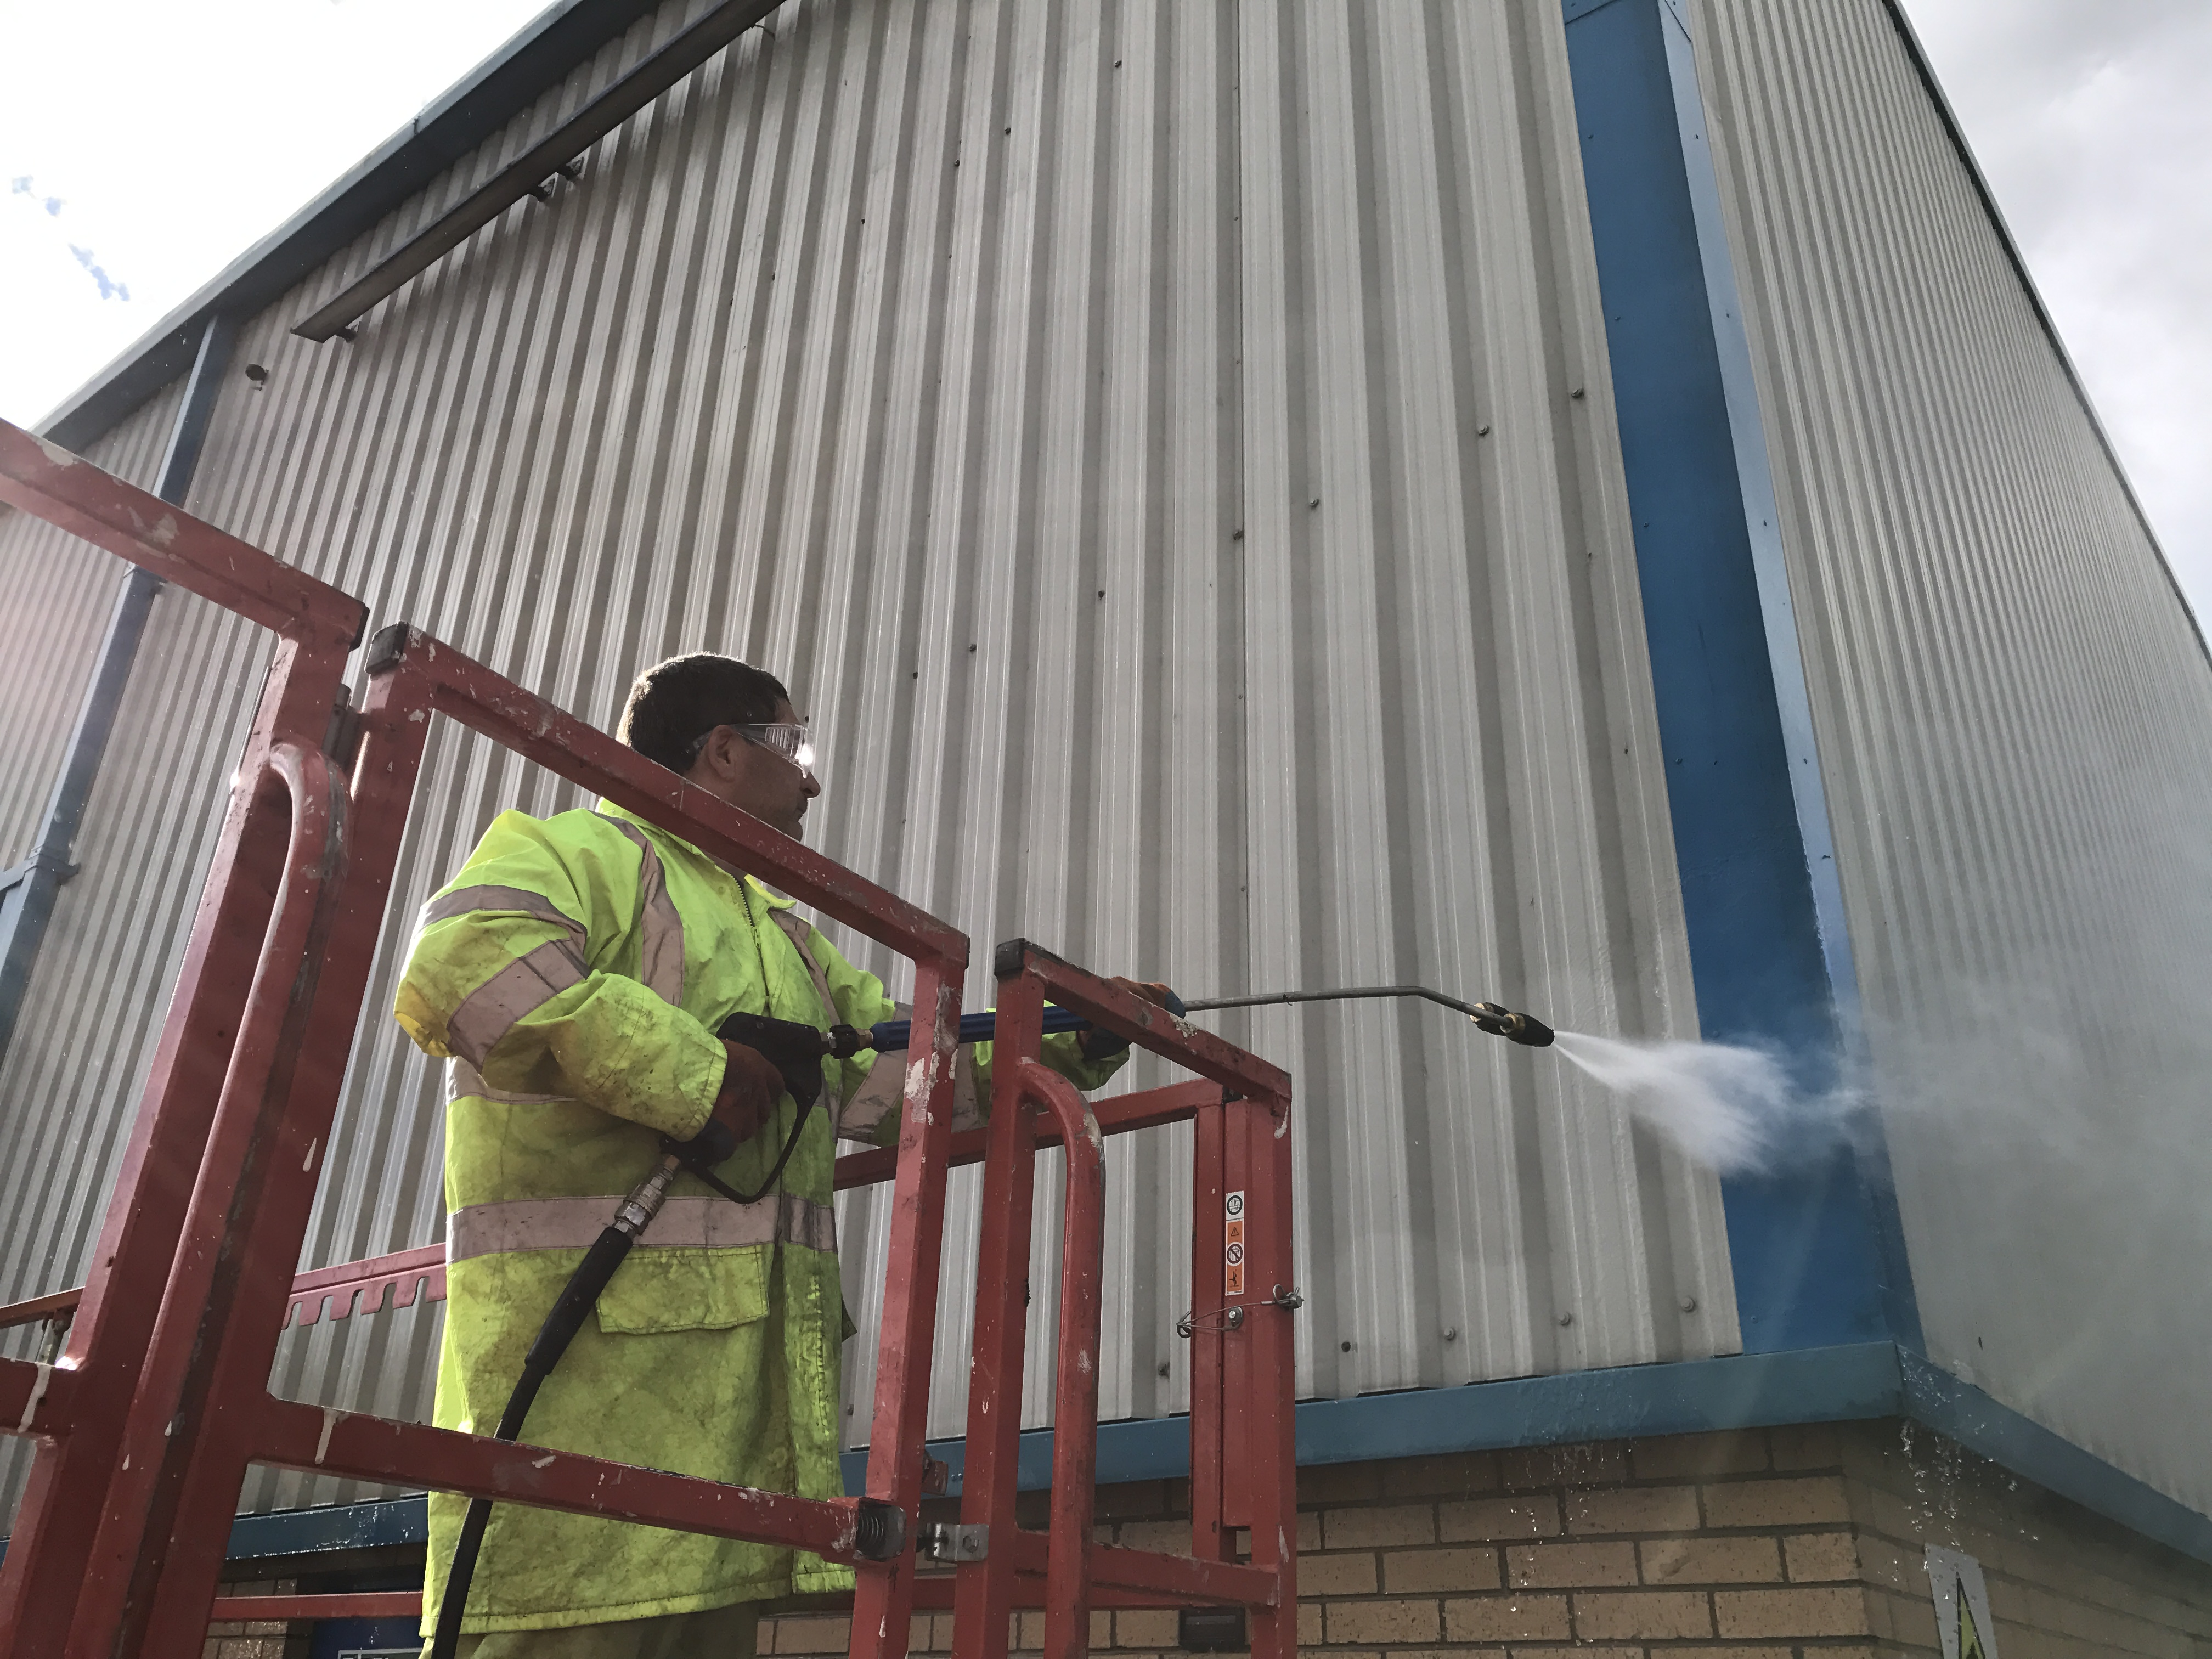 Structural Cleaning - Cladding and Fascia Cleaning. Cladding Cleaning. High level Specialists Ltd.